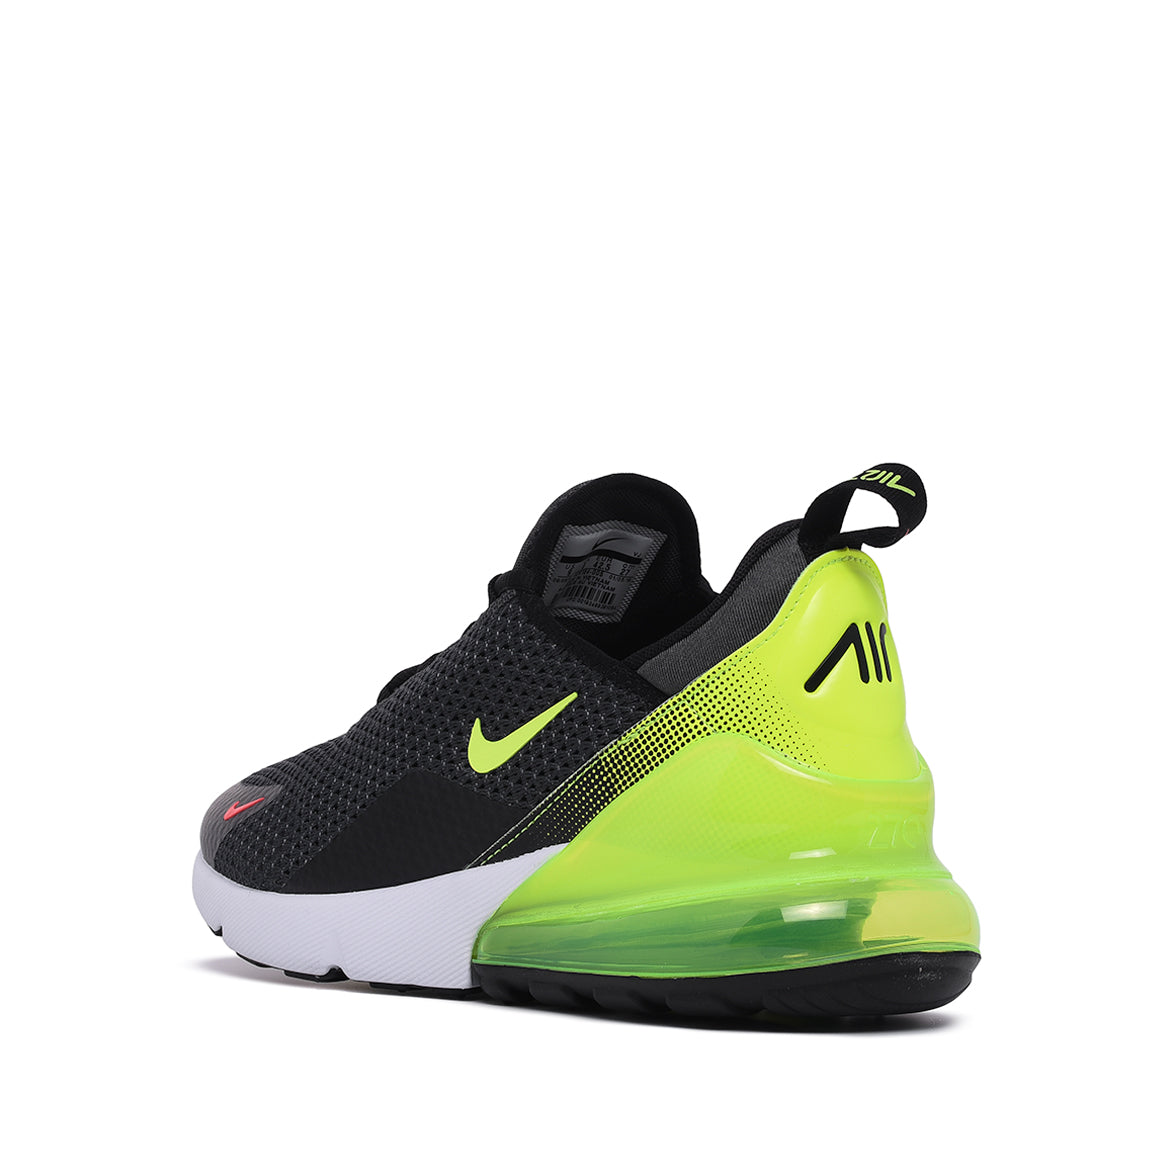 0932e3c401 AIR MAX 270 SE - ANTHRACITE / VOLT / BLACK | City Blue